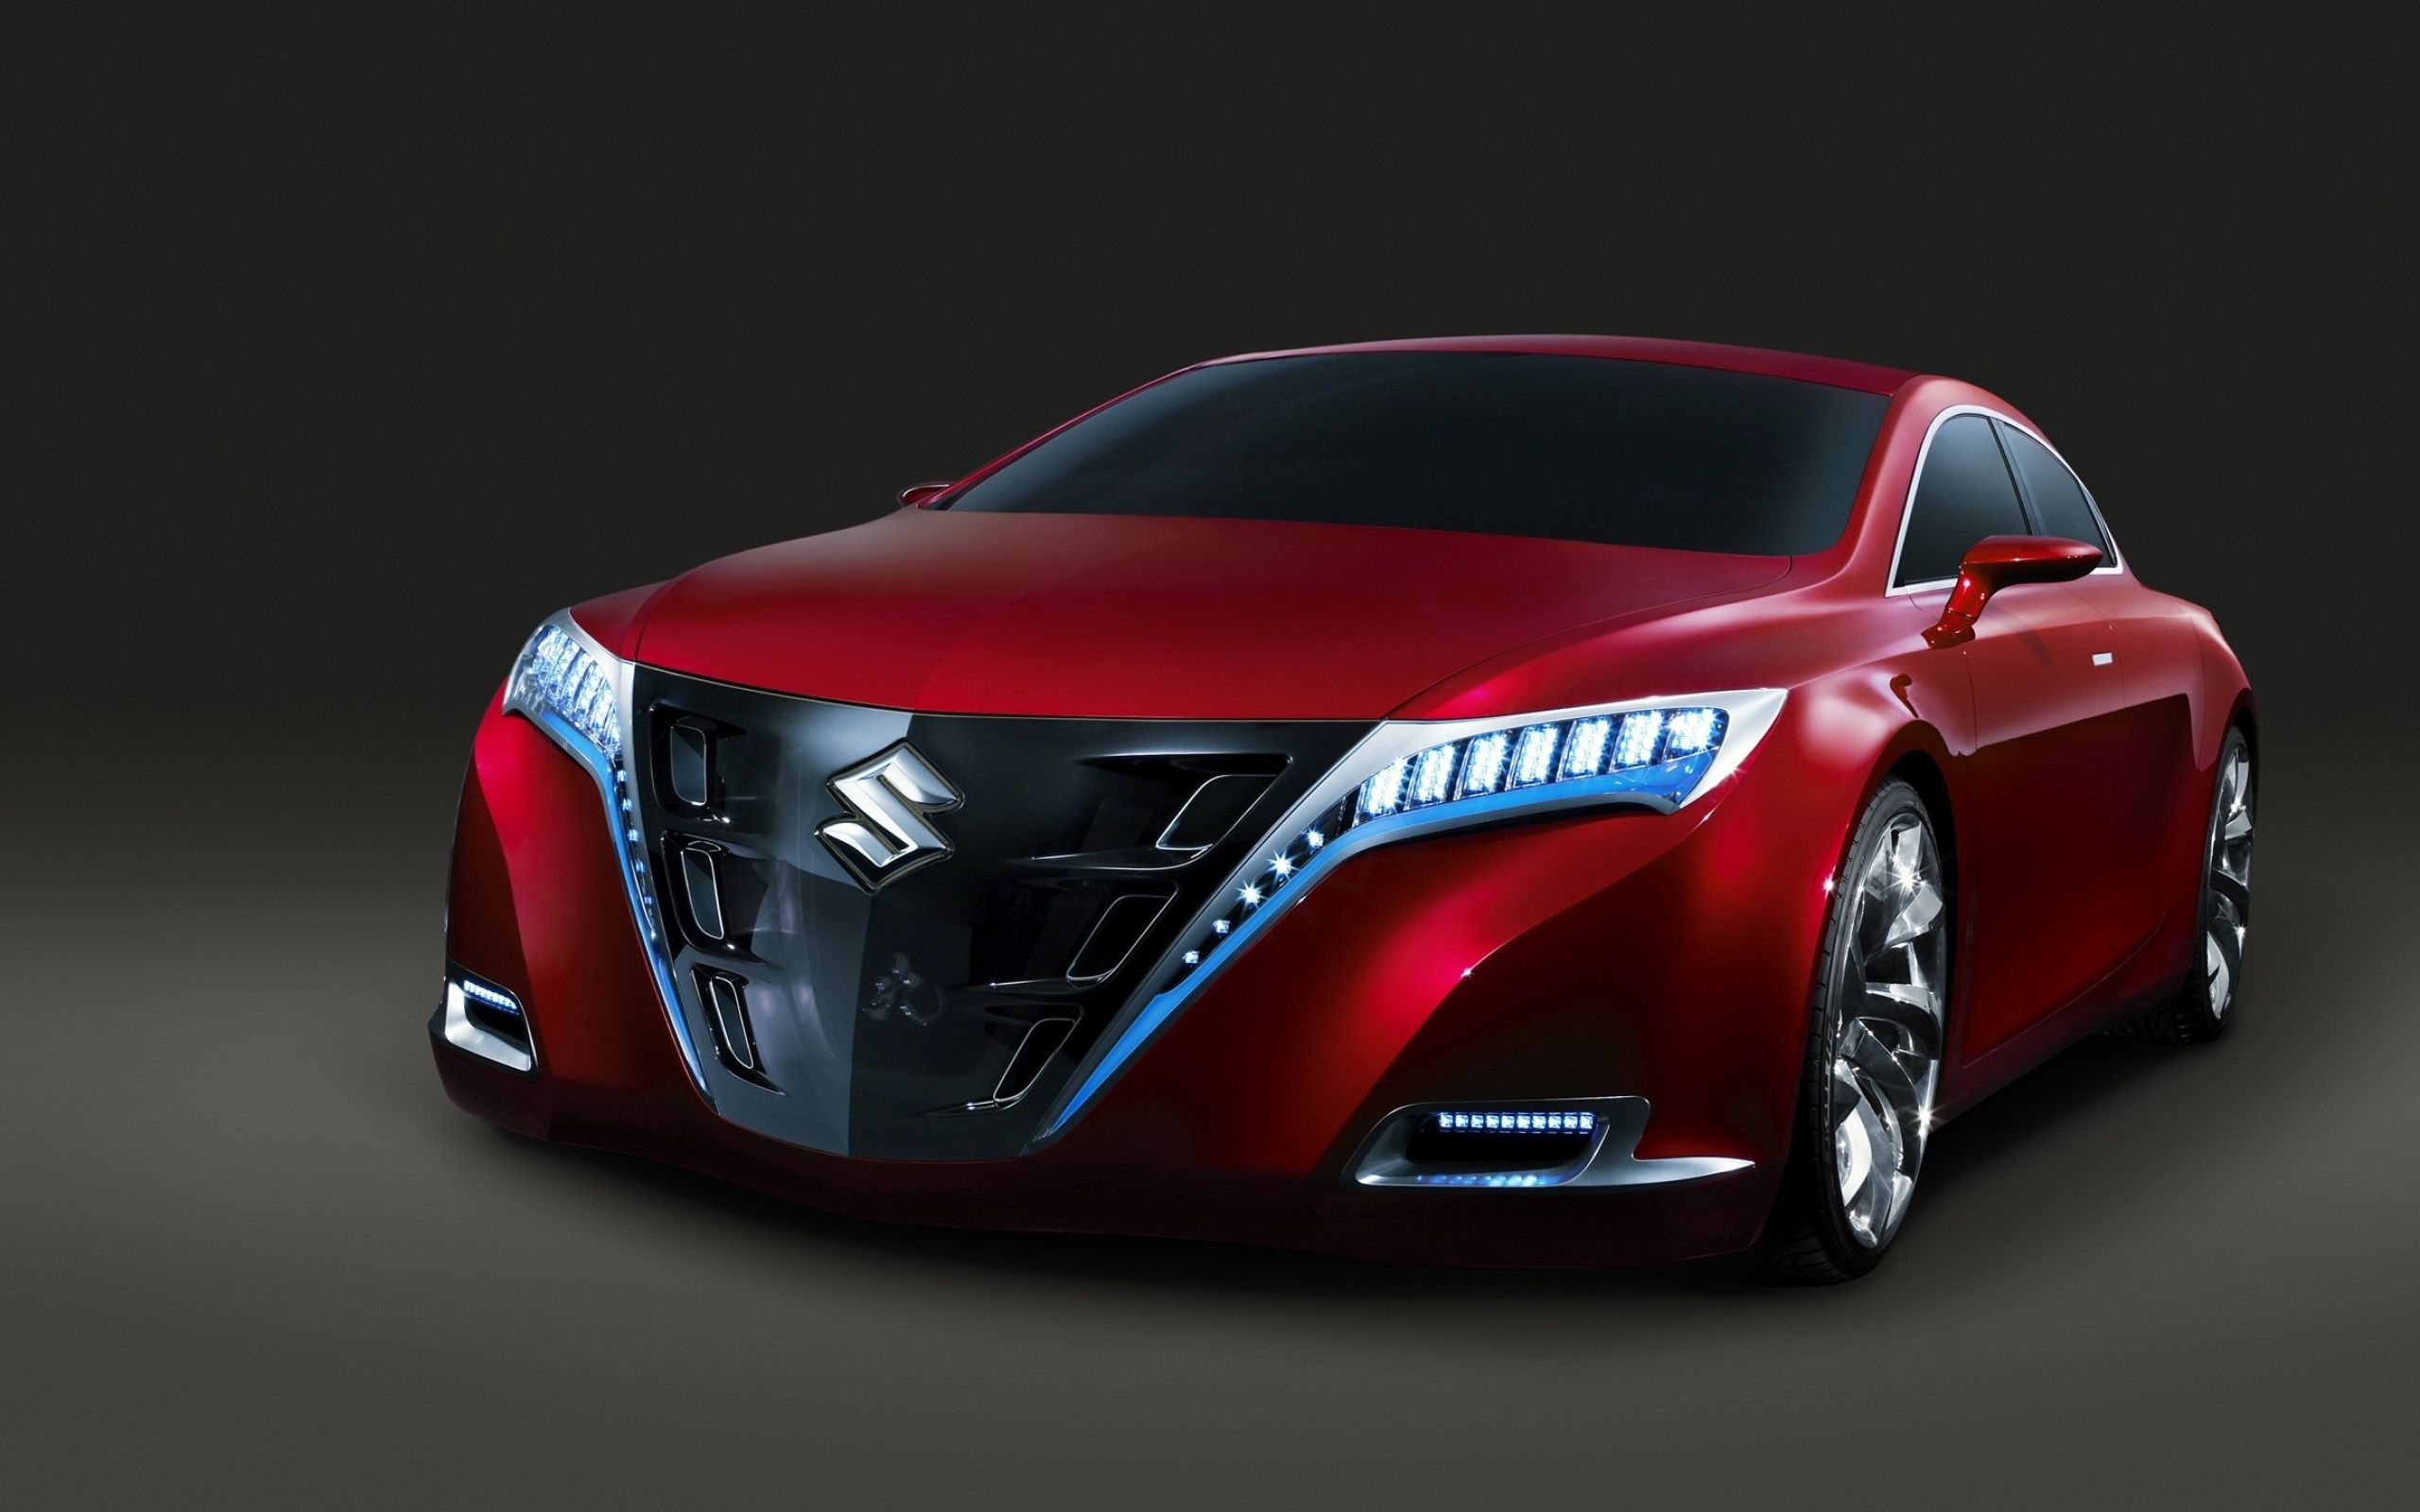 Suzuki Concept Car Suzuki Cars Concept Car Design Sports Car Wallpaper